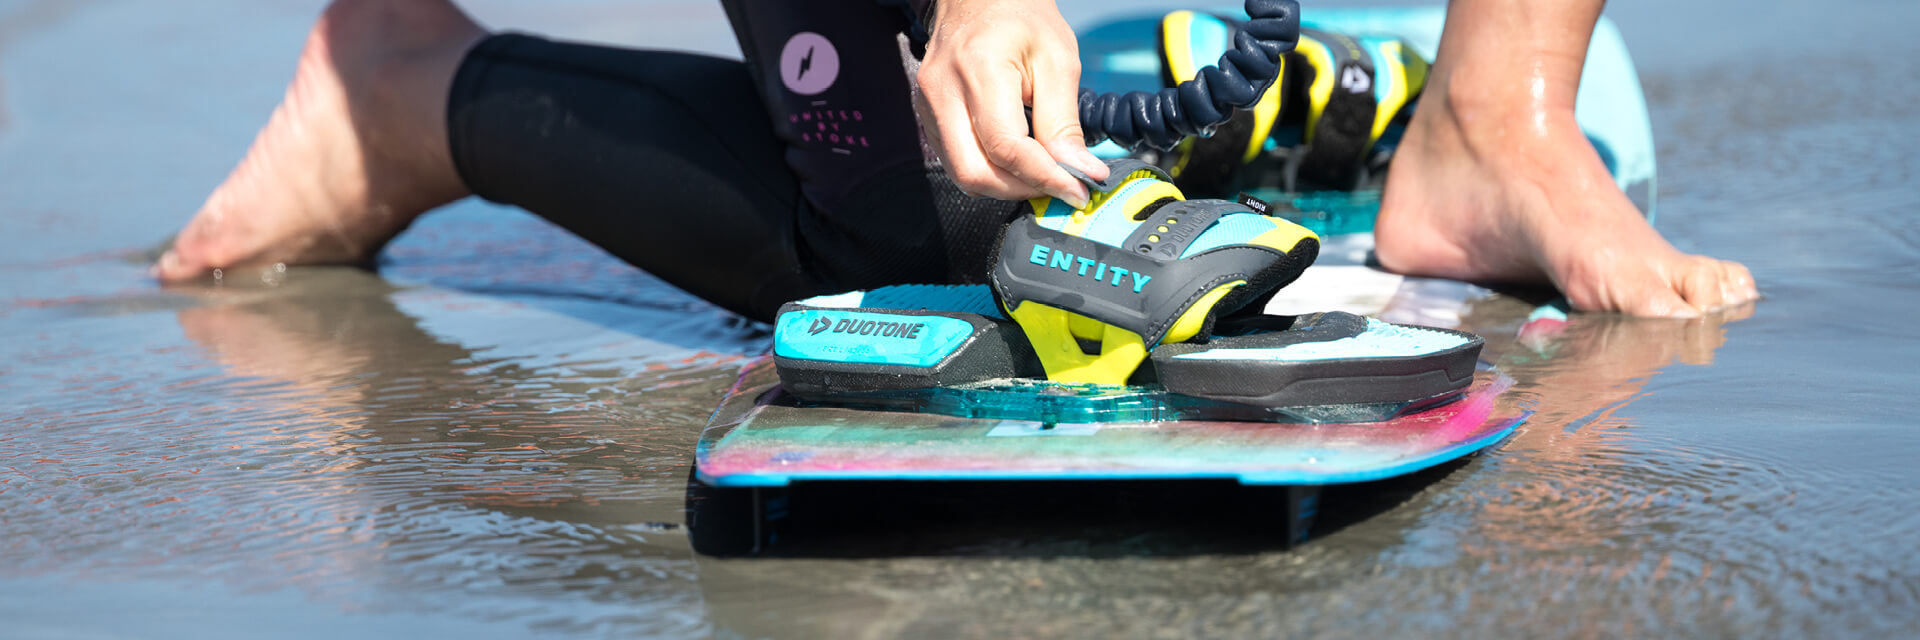 Duotone Kiteboarding_Binding and Boots overview 2020 header